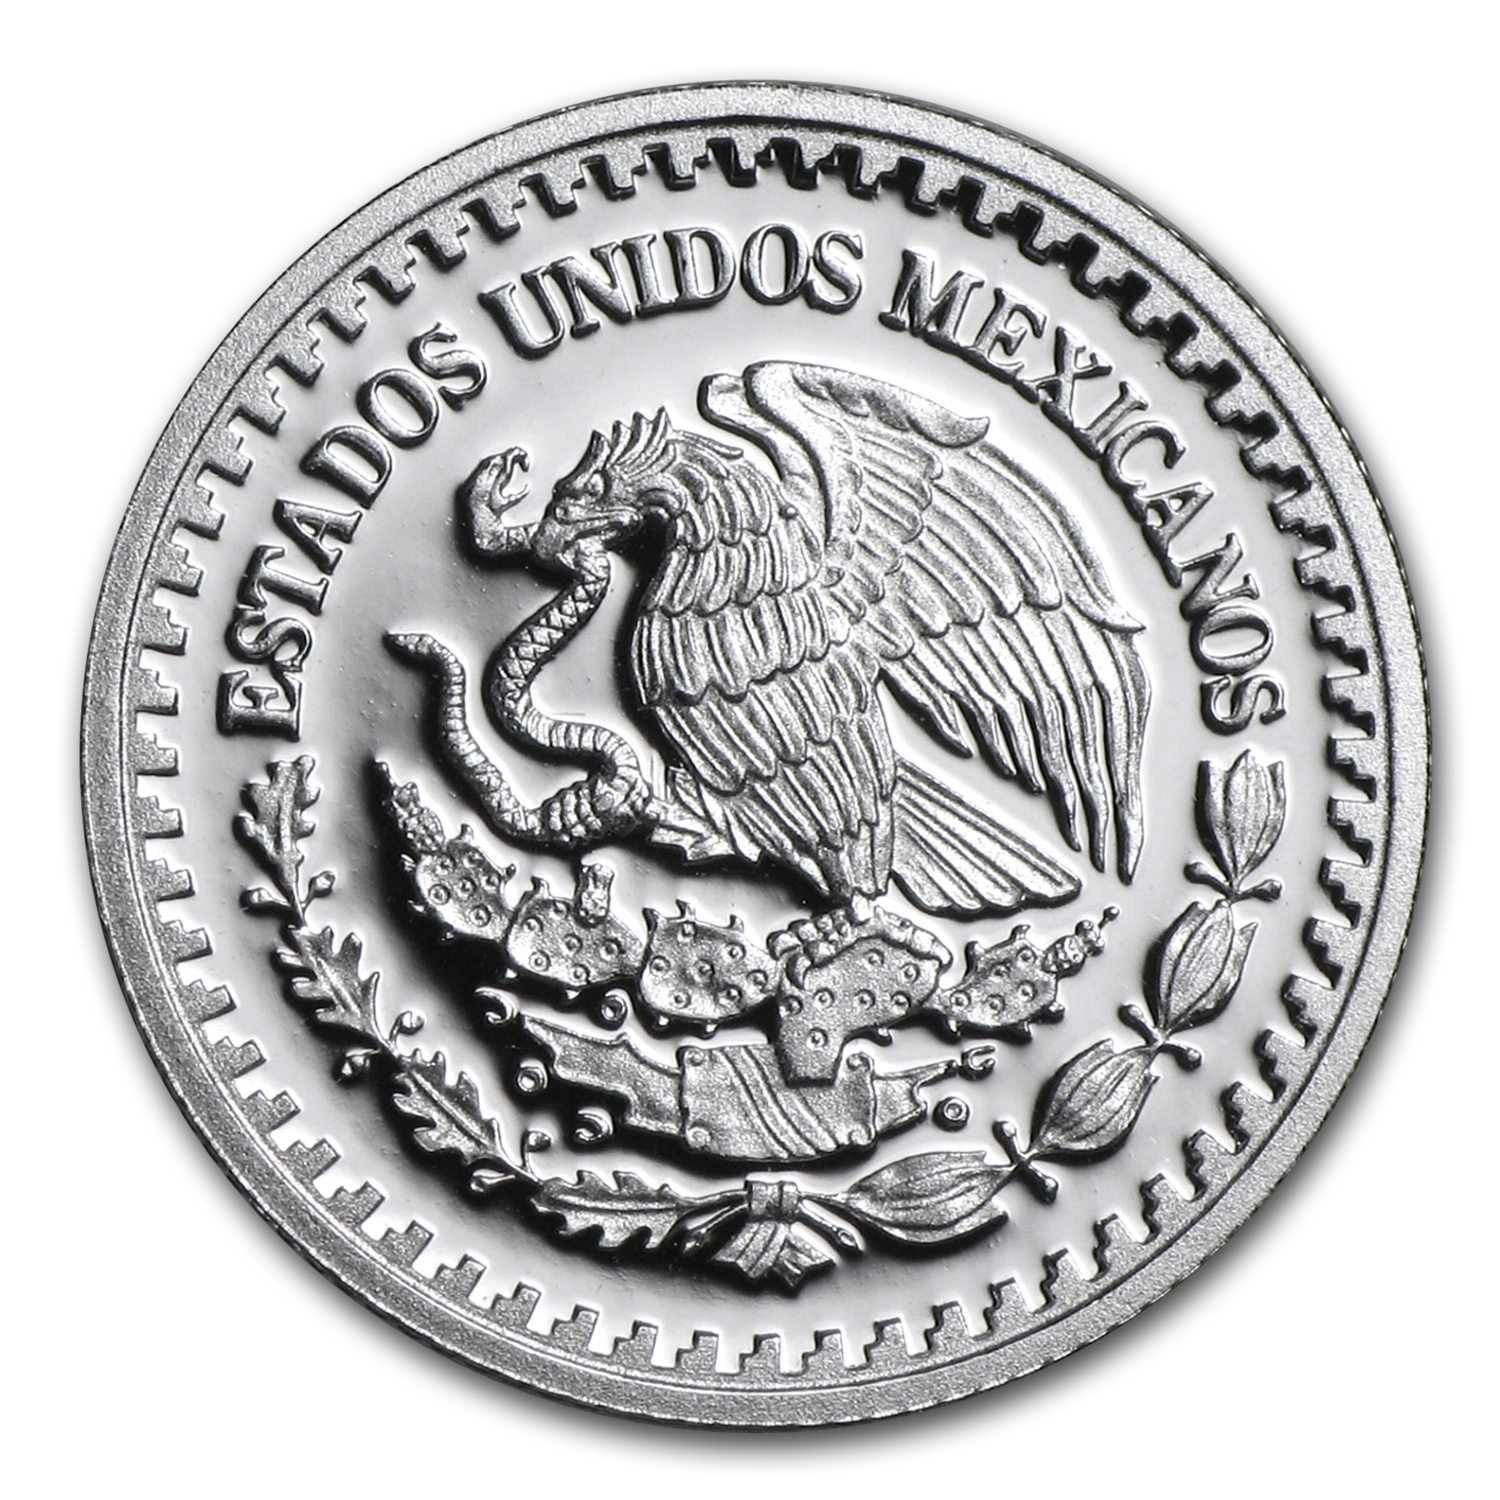 2014 Mexico 1/20 oz Silver Libertad Proof (In Capsule)